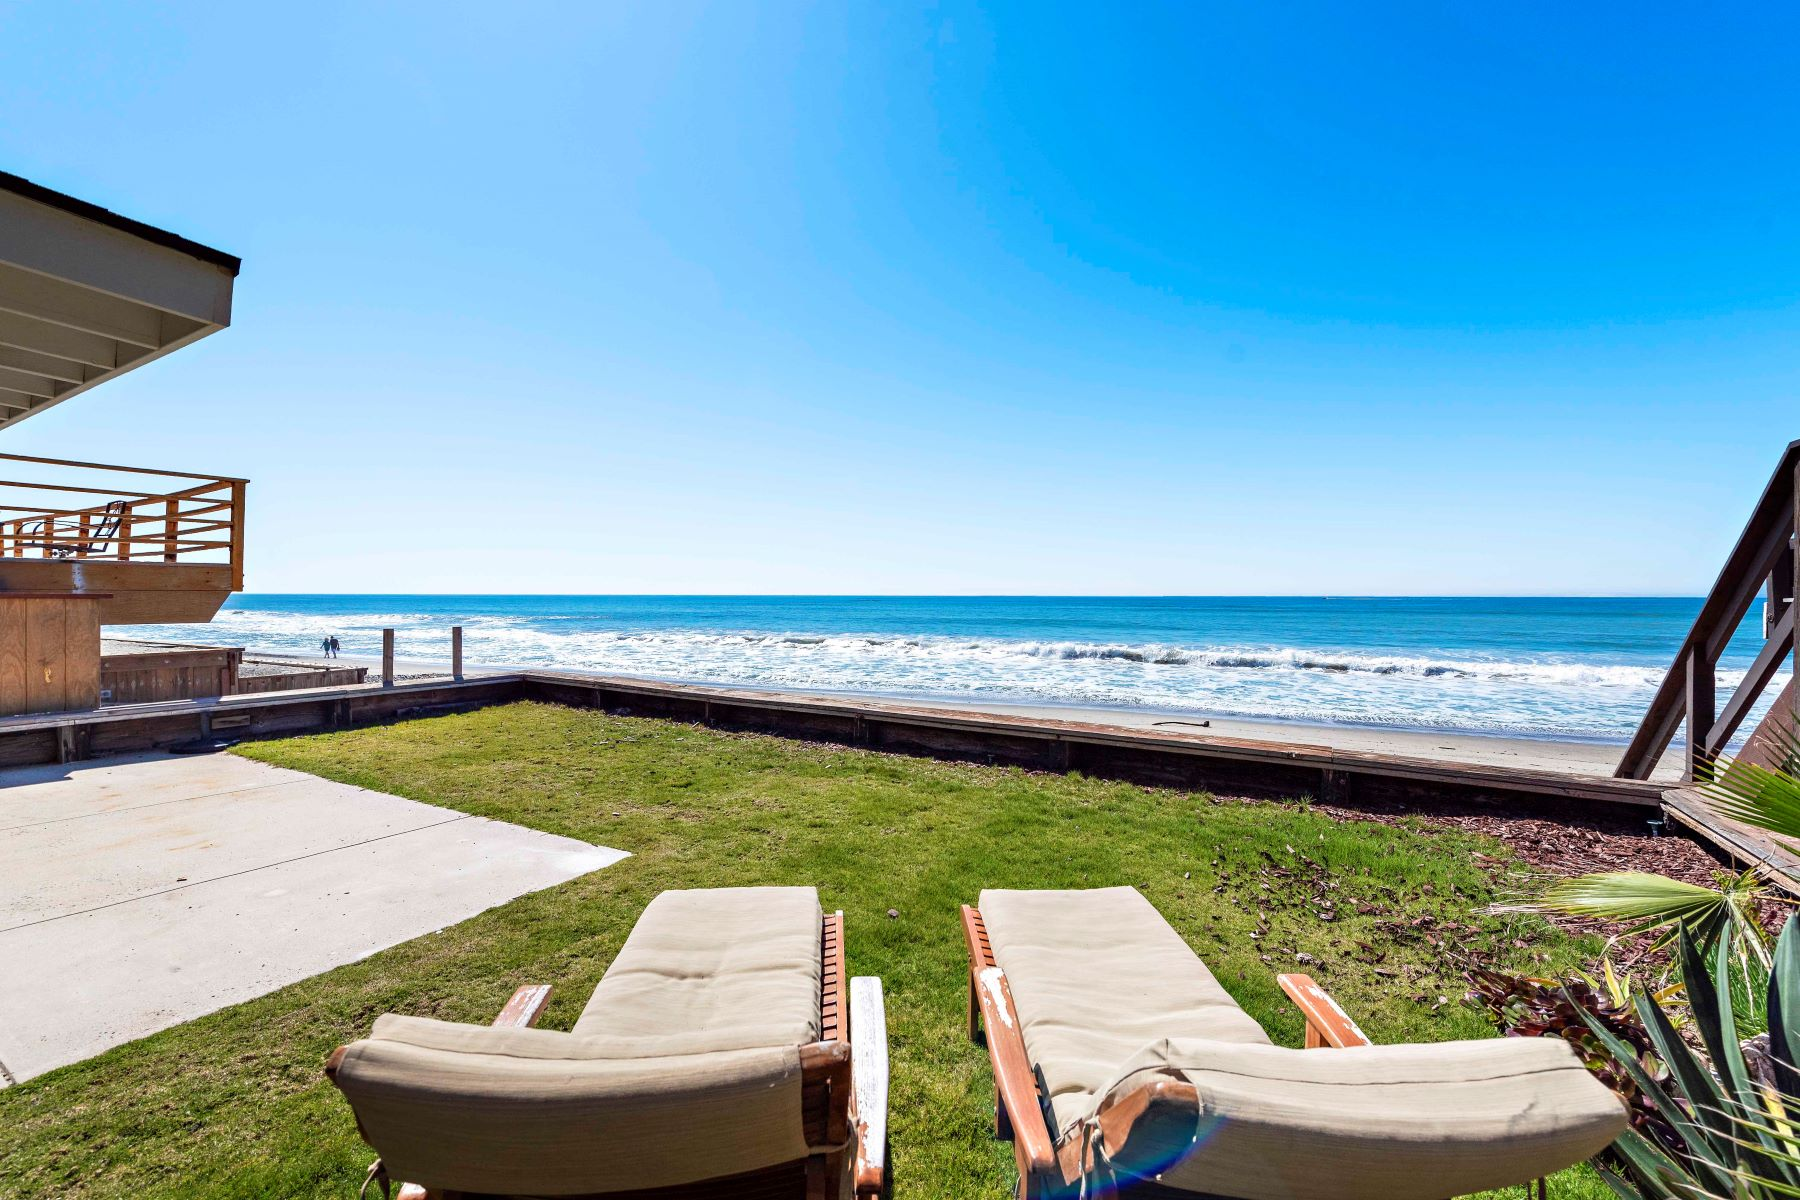 Single Family Homes for Sale at 35575 Beach Road Dana Point, California 92624 United States